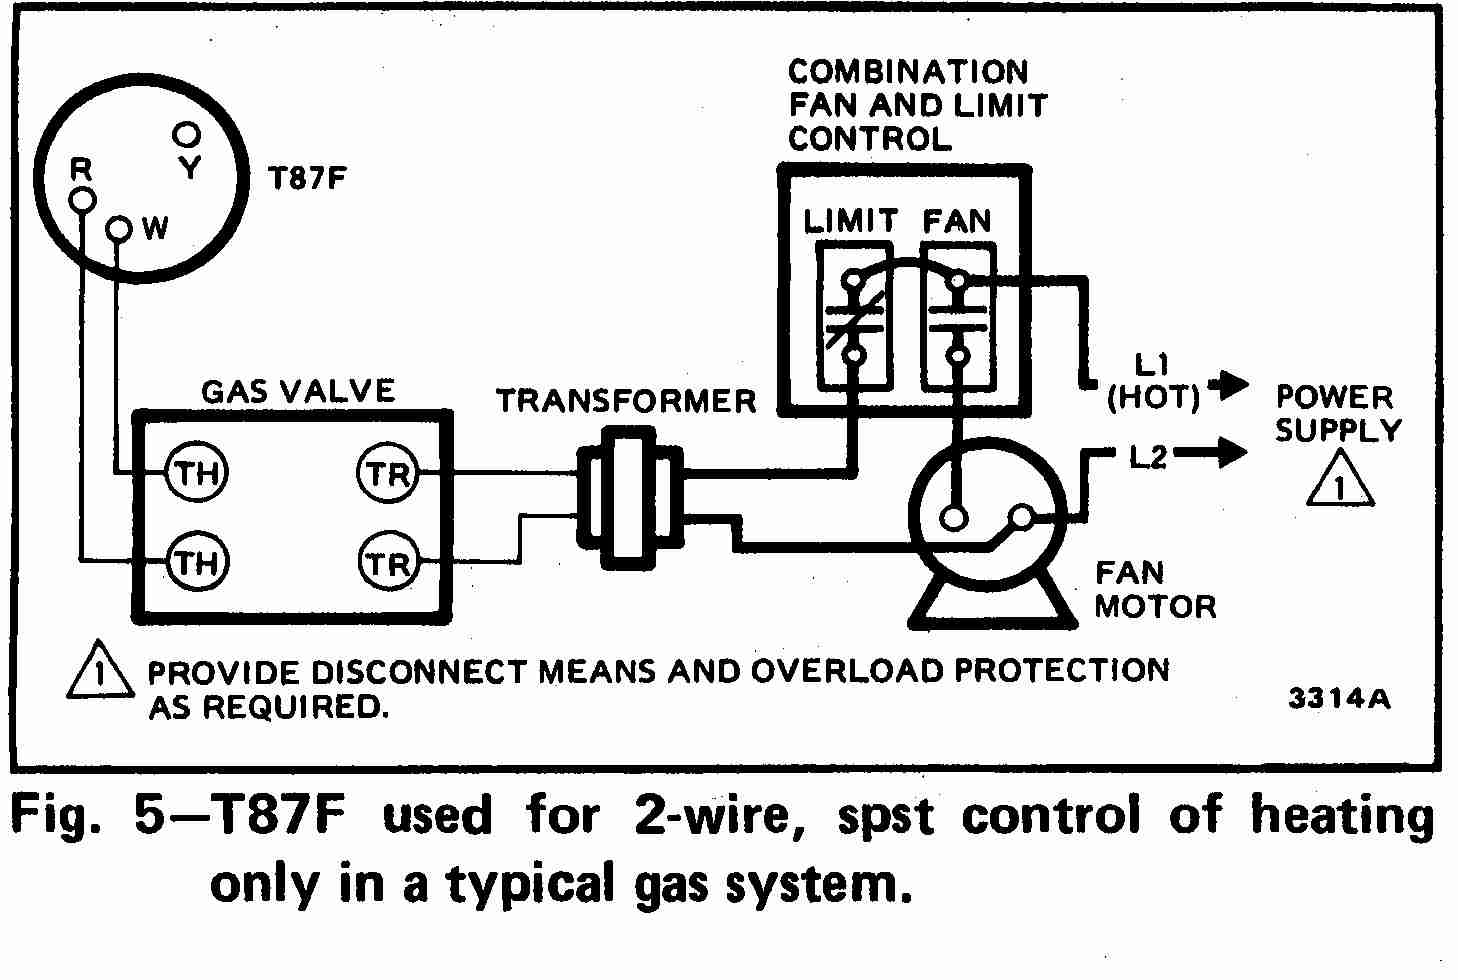 TT_T87F_0002_2Wg_DJF room thermostat wiring diagrams for hvac systems Oil Furnace Transformer Wiring Diagram at edmiracle.co